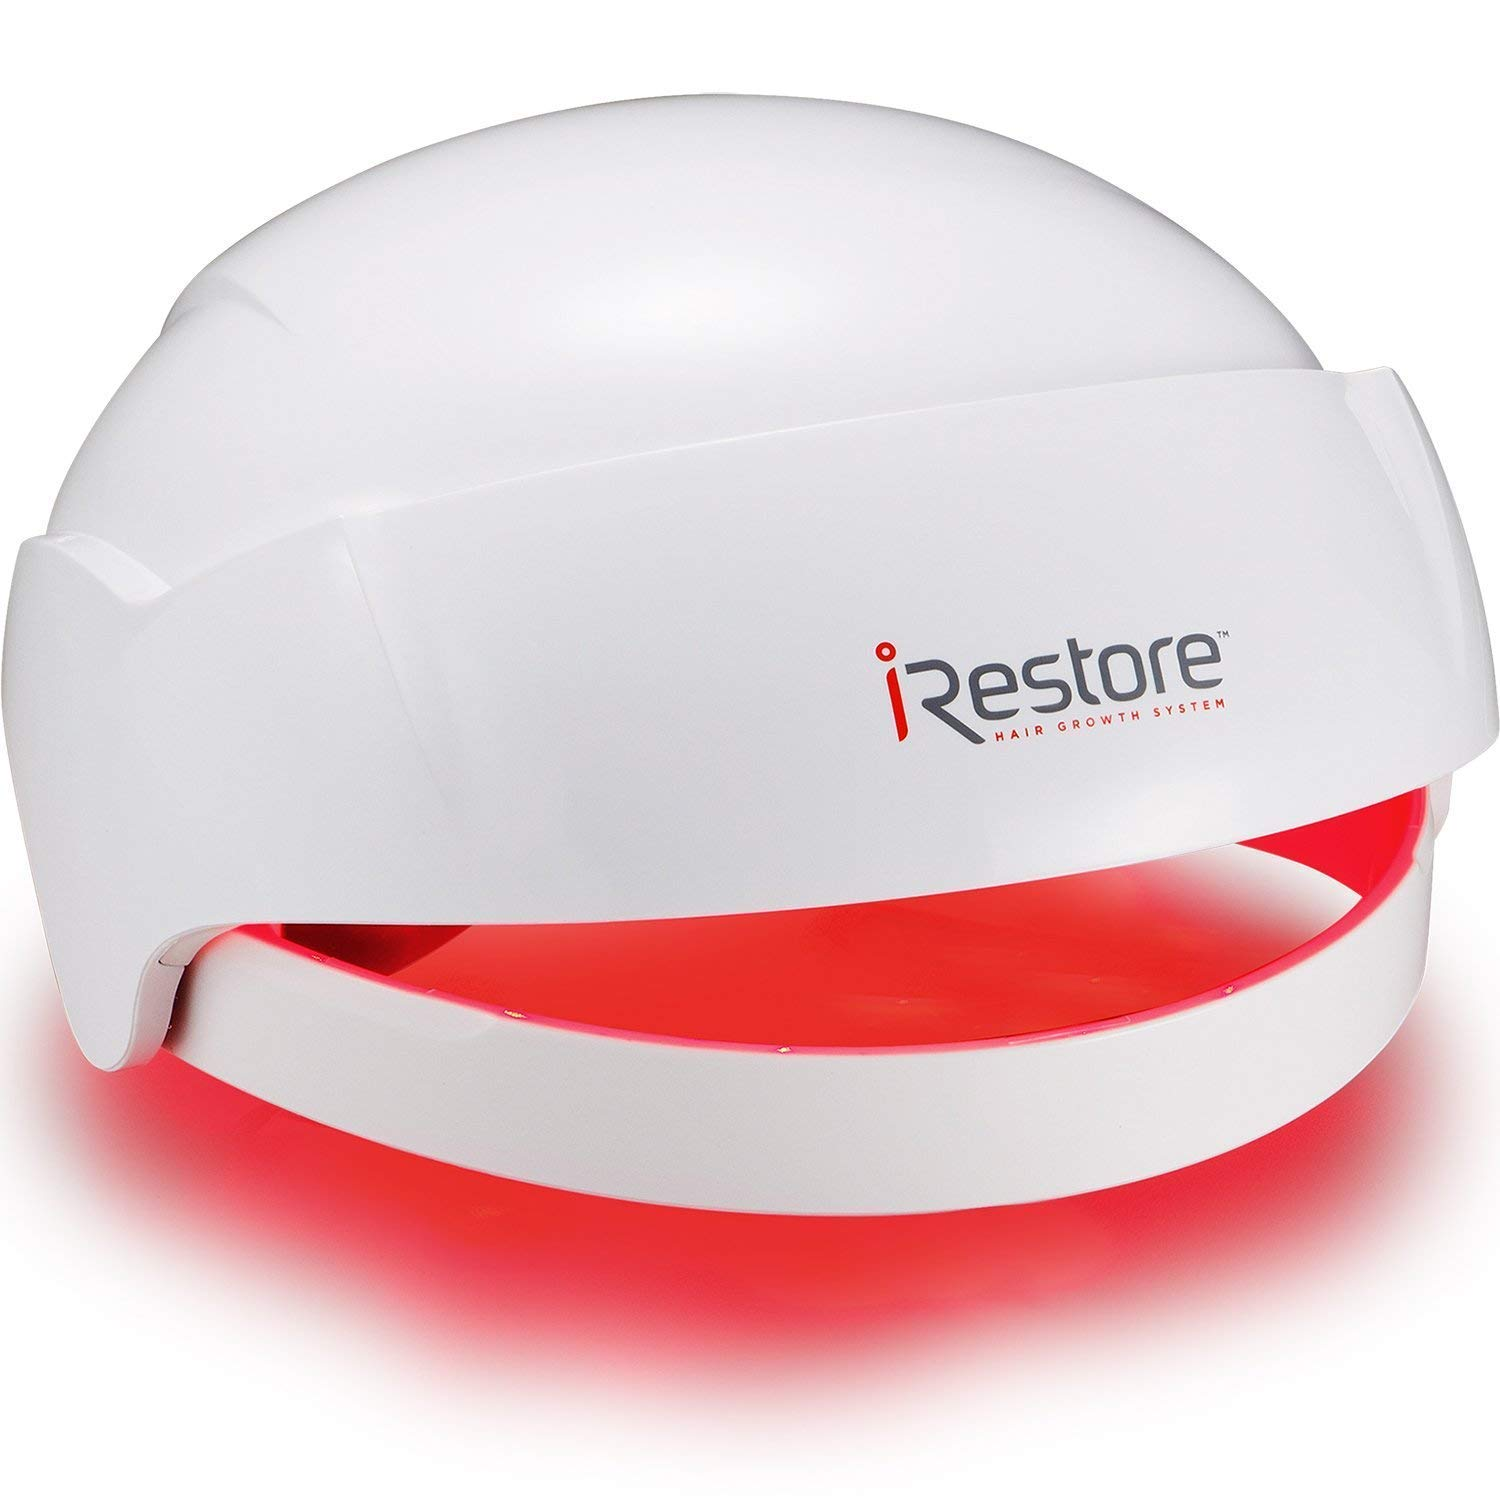 Best Hair Regrowth Treatments For Men & Women (Buying Guide) - iRestore